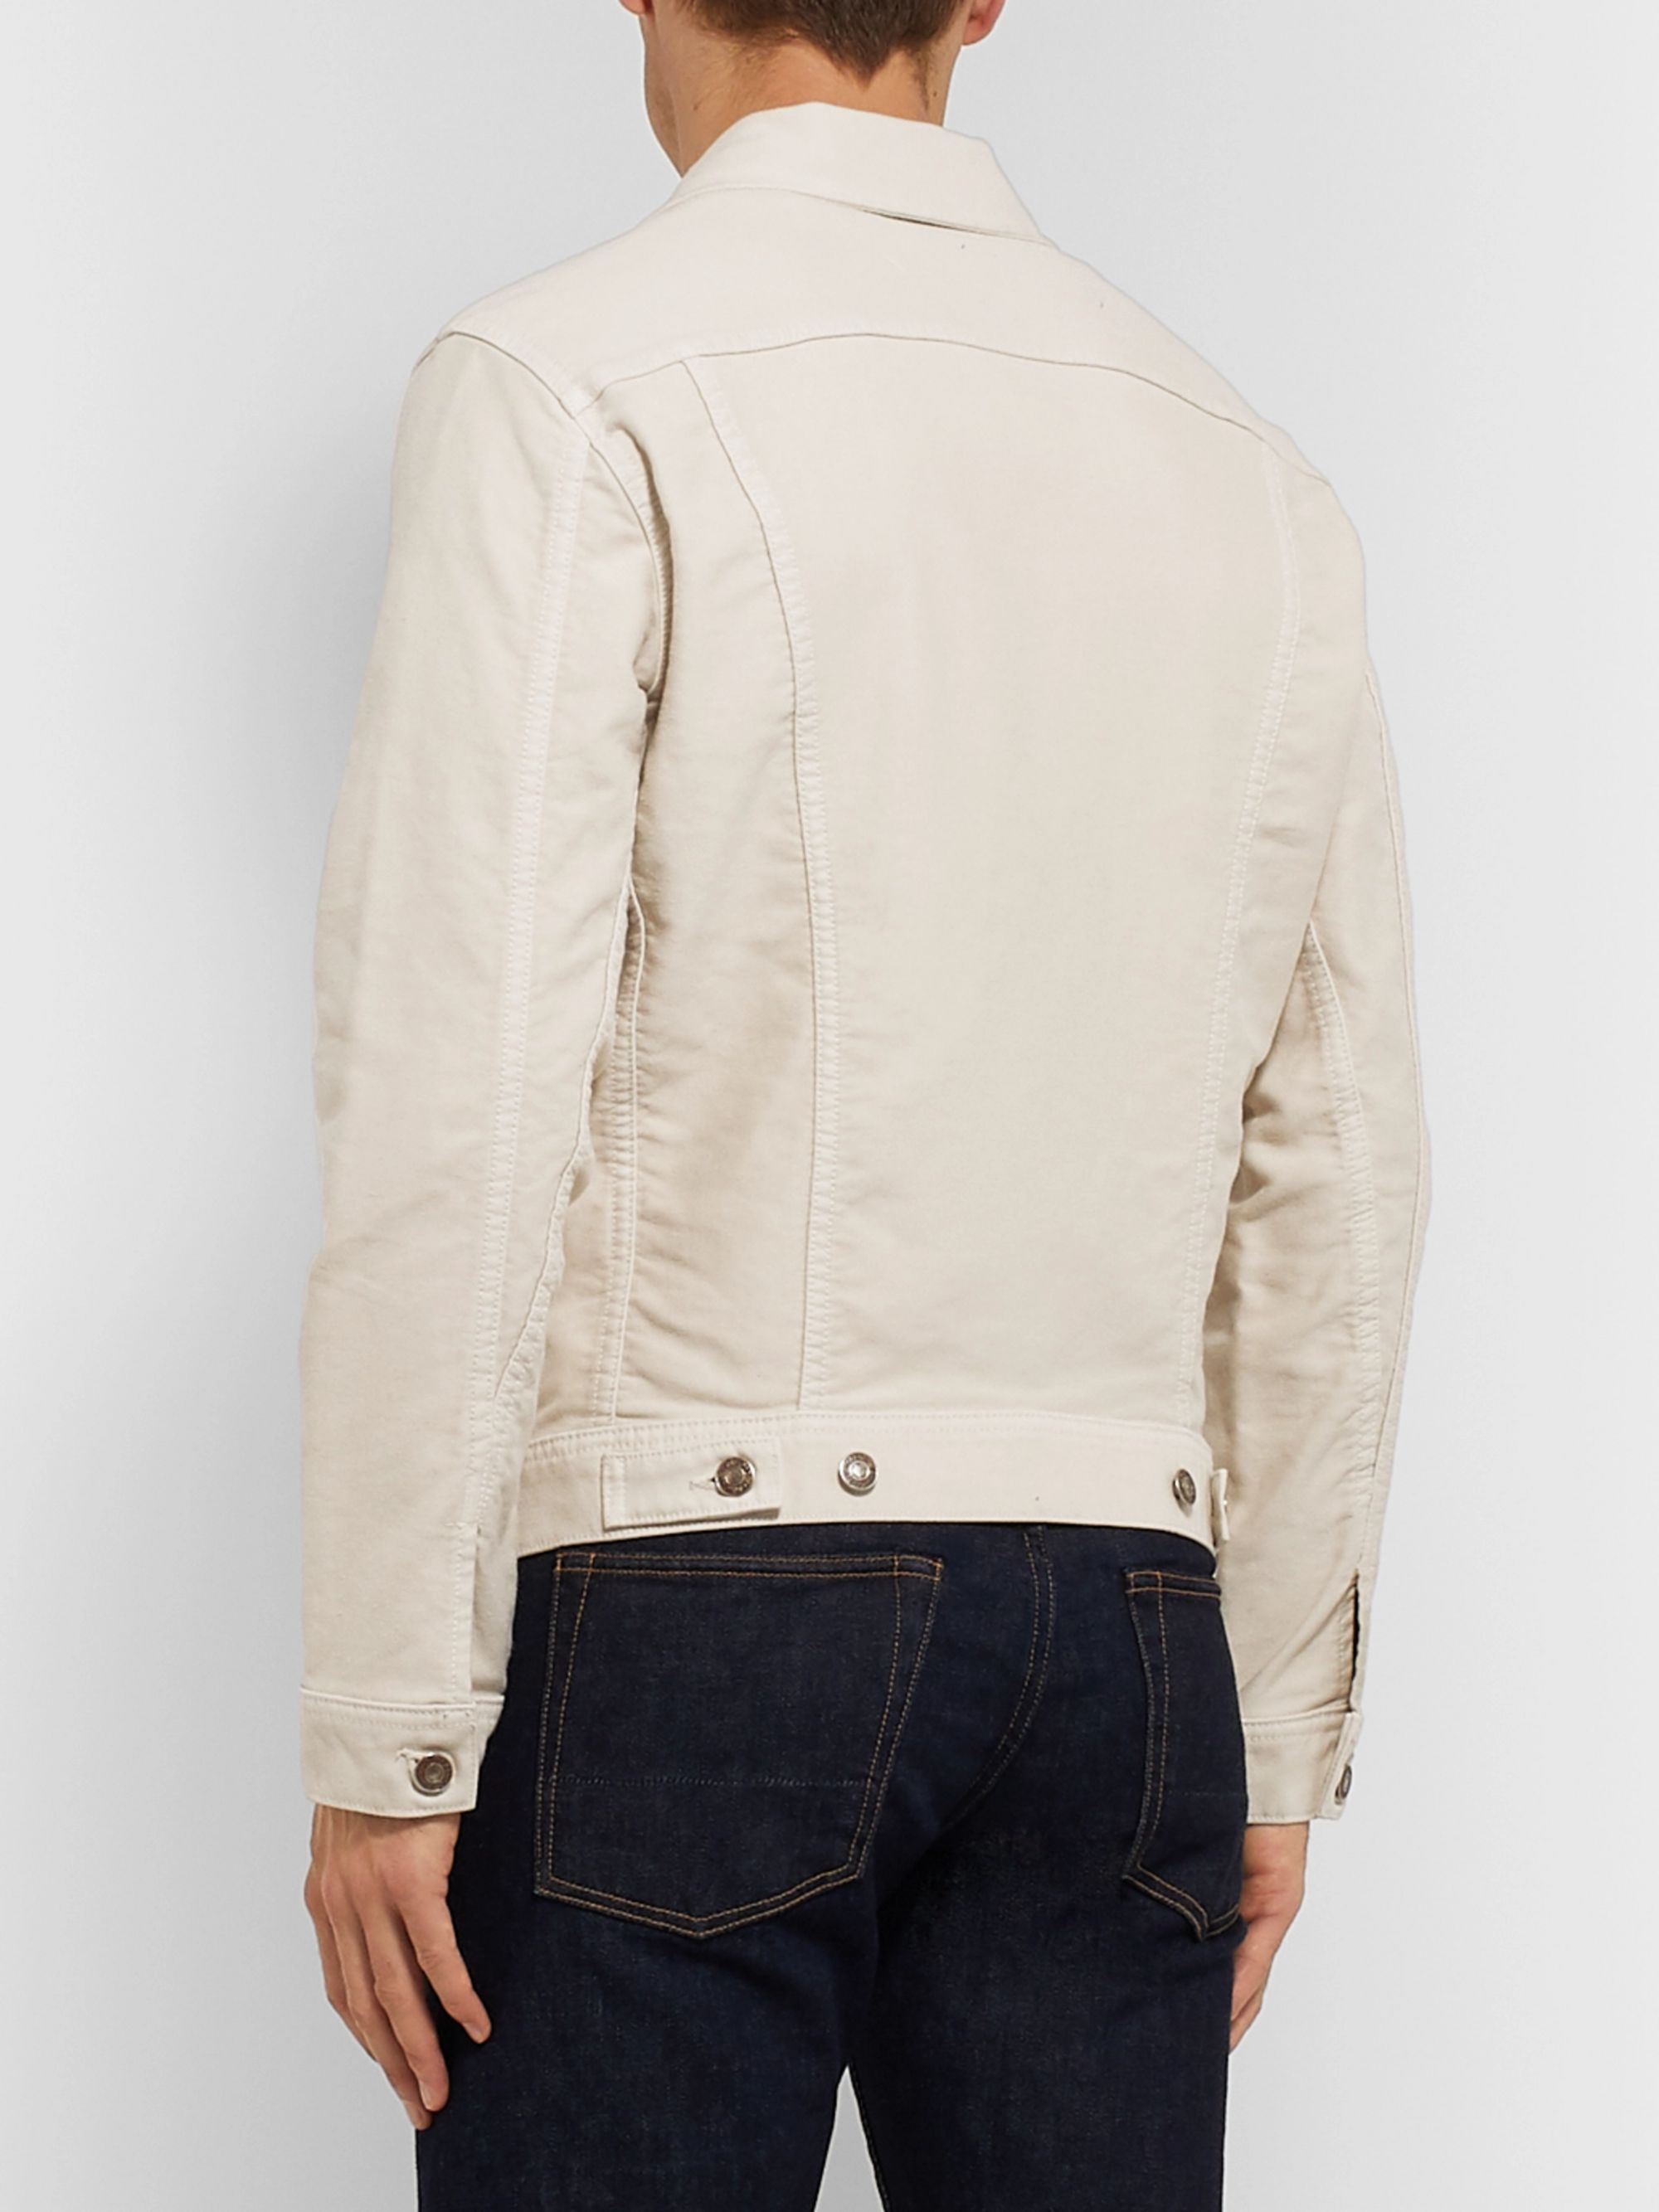 TOM FORD Denim Trucker Jacket